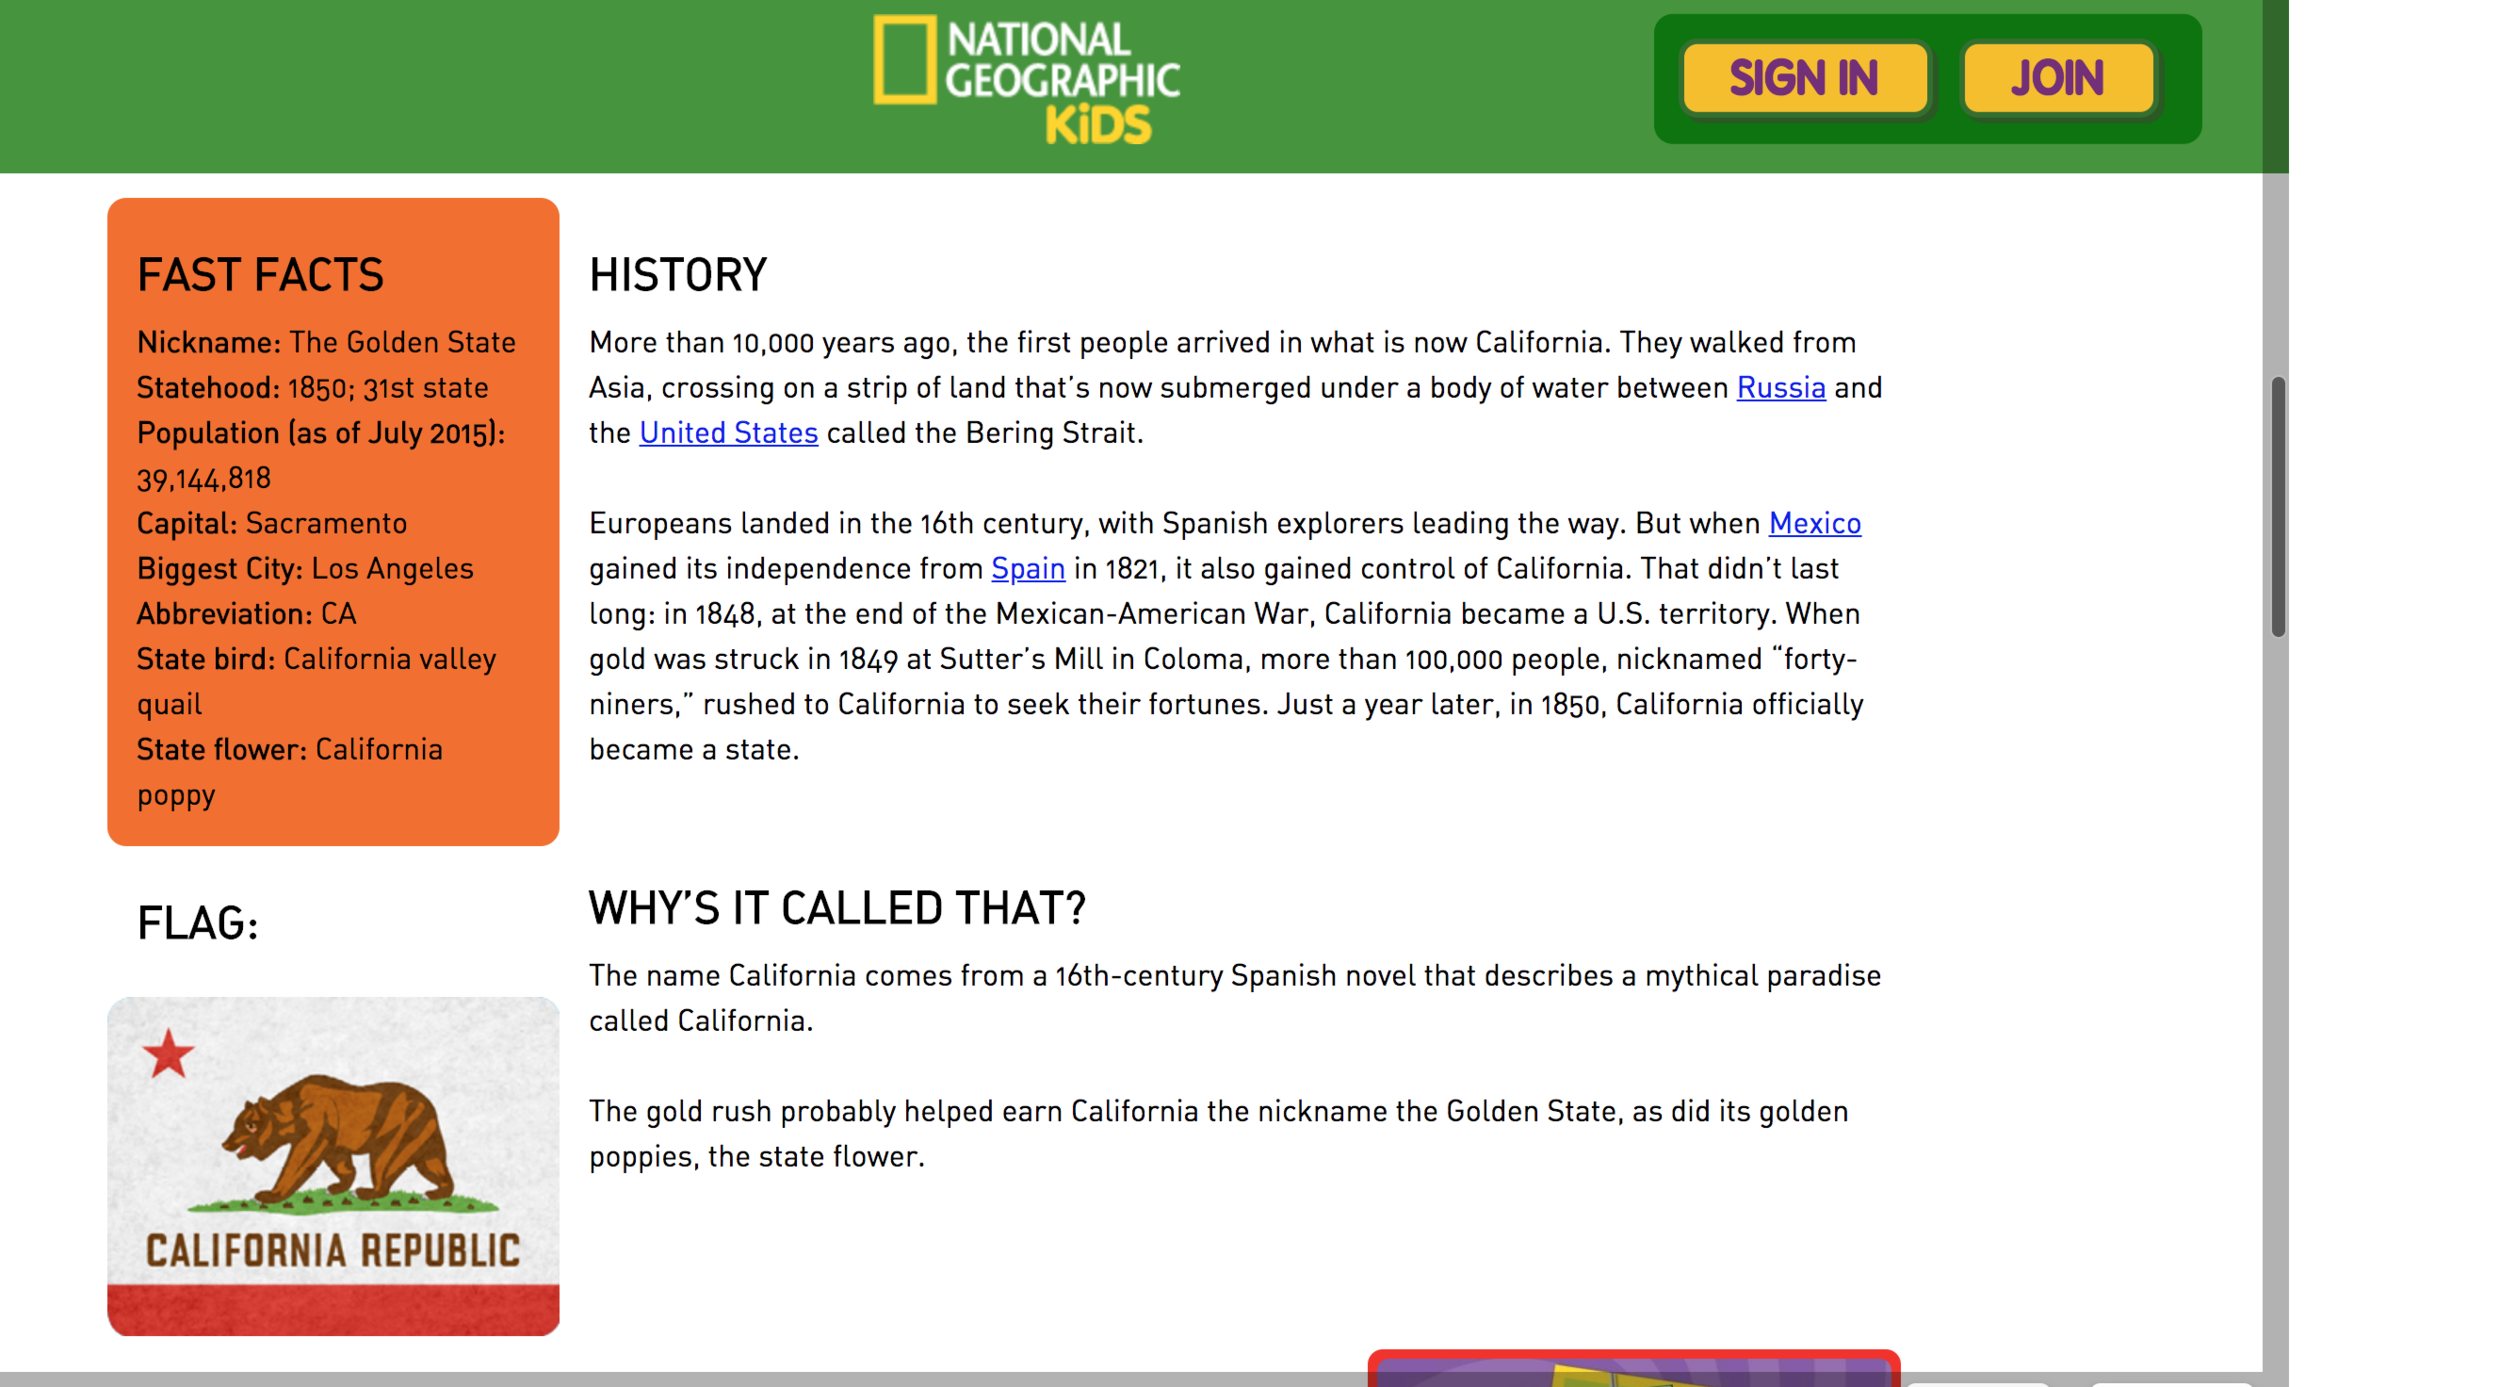 Many sites, like  NatGeo Kids , had good information but were not focused on adults.